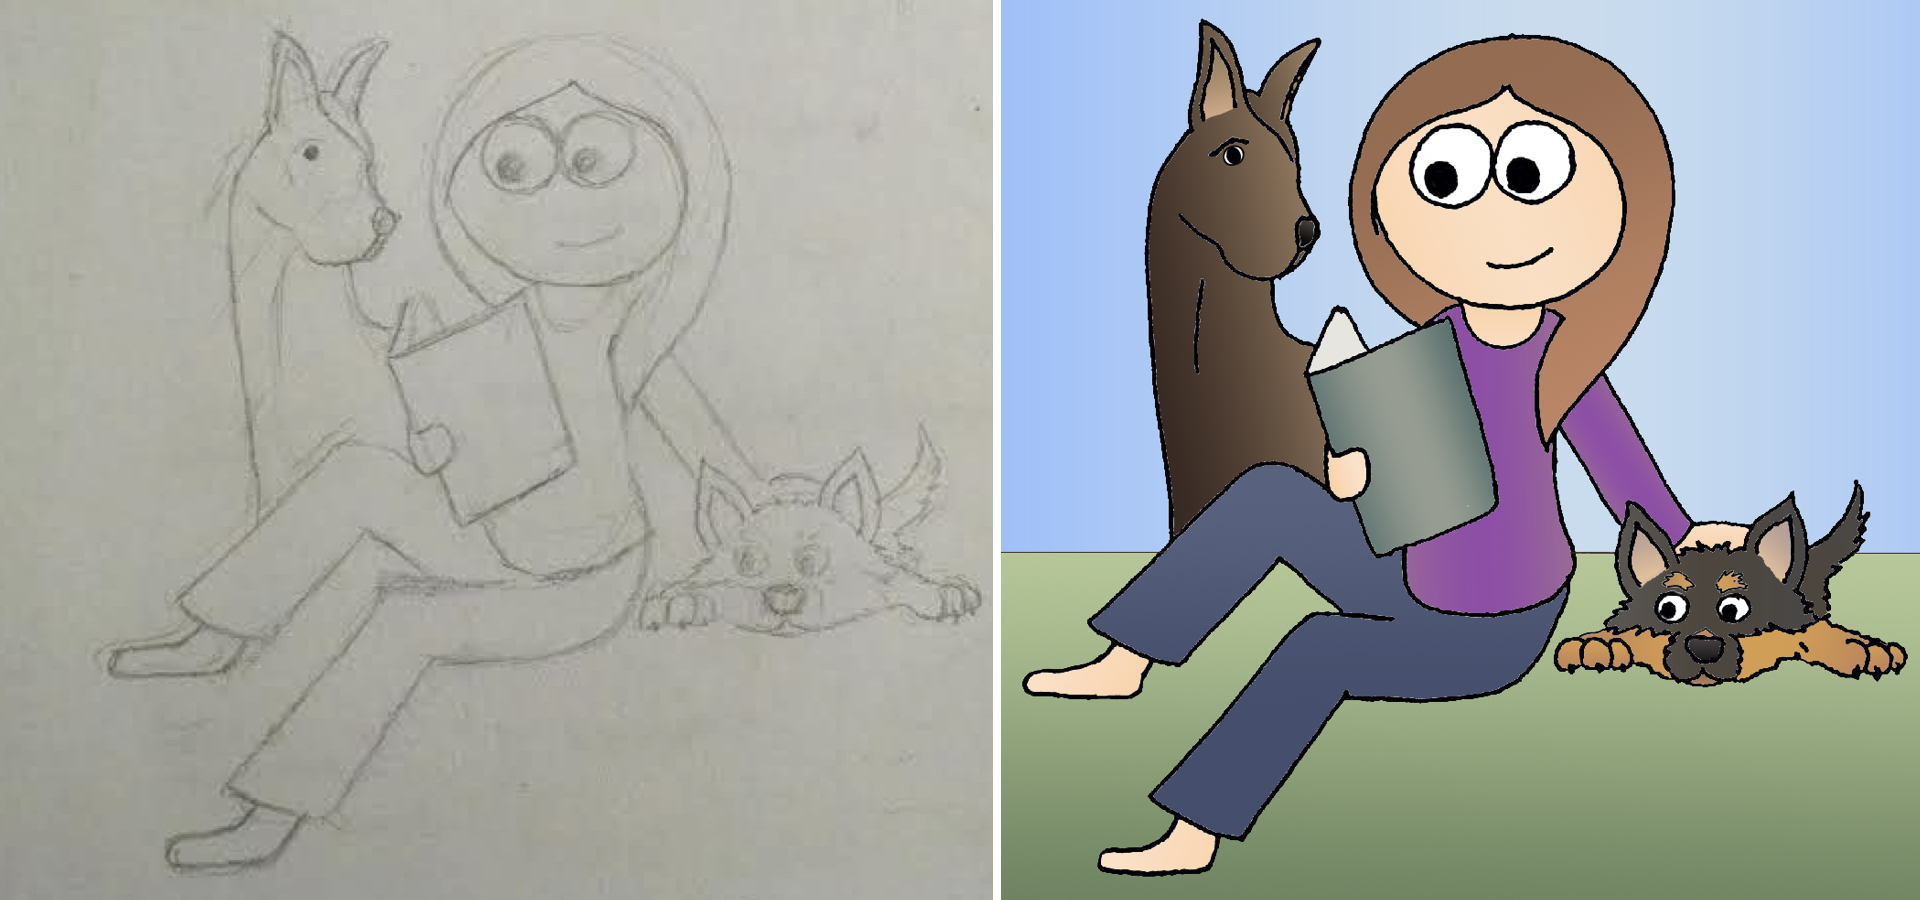 A drawing before and after being inked and colored.